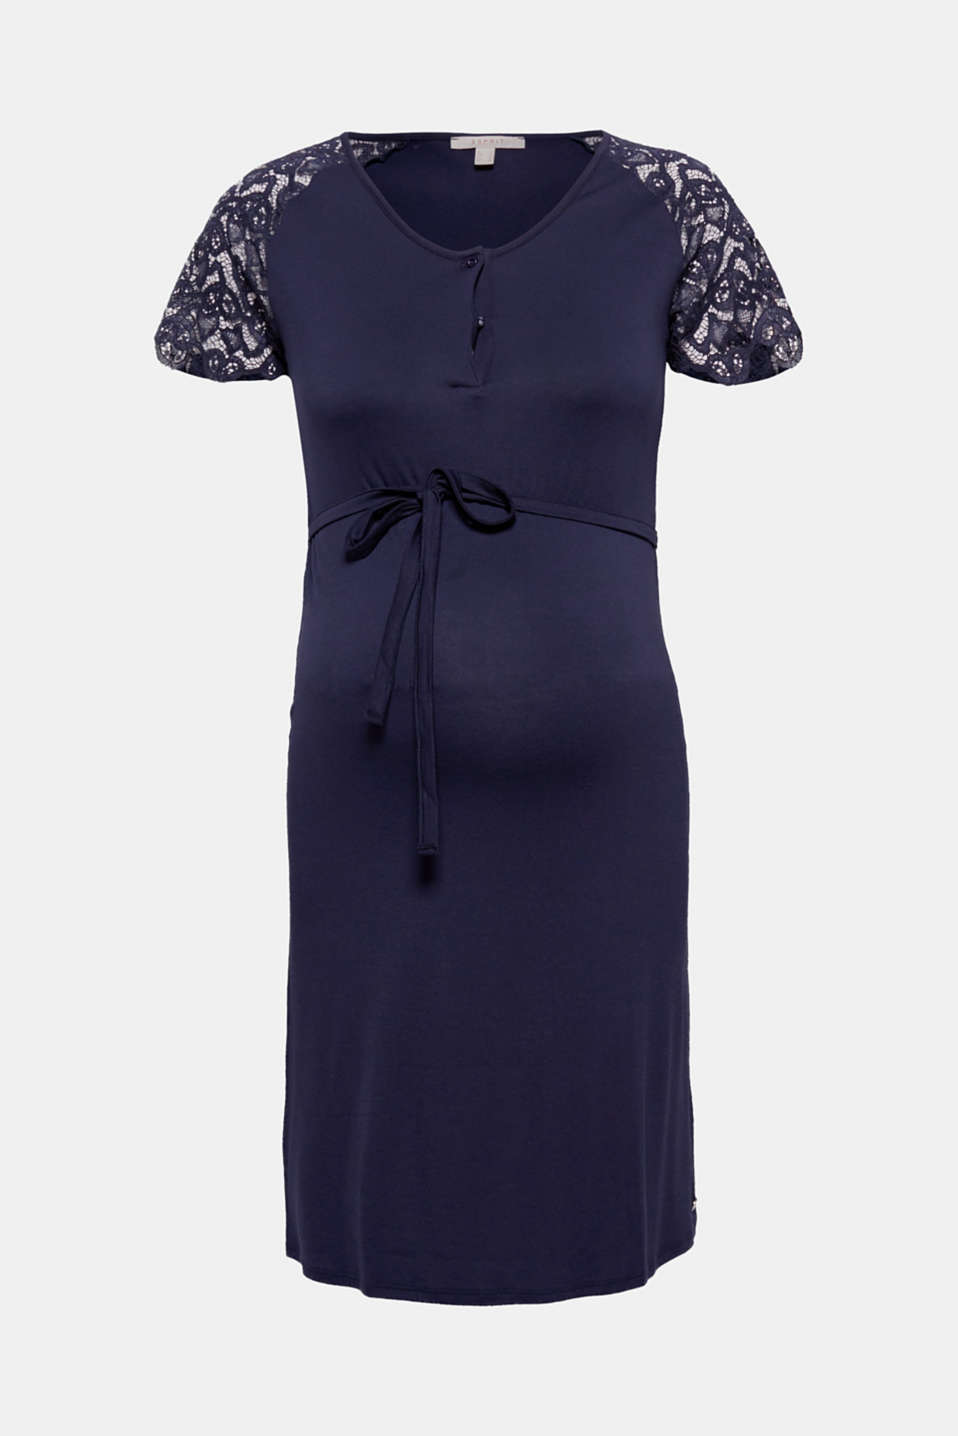 This dress in flowing jersey with high-quality lace sleeves and a nursing function is stylish, romantic and pretty!